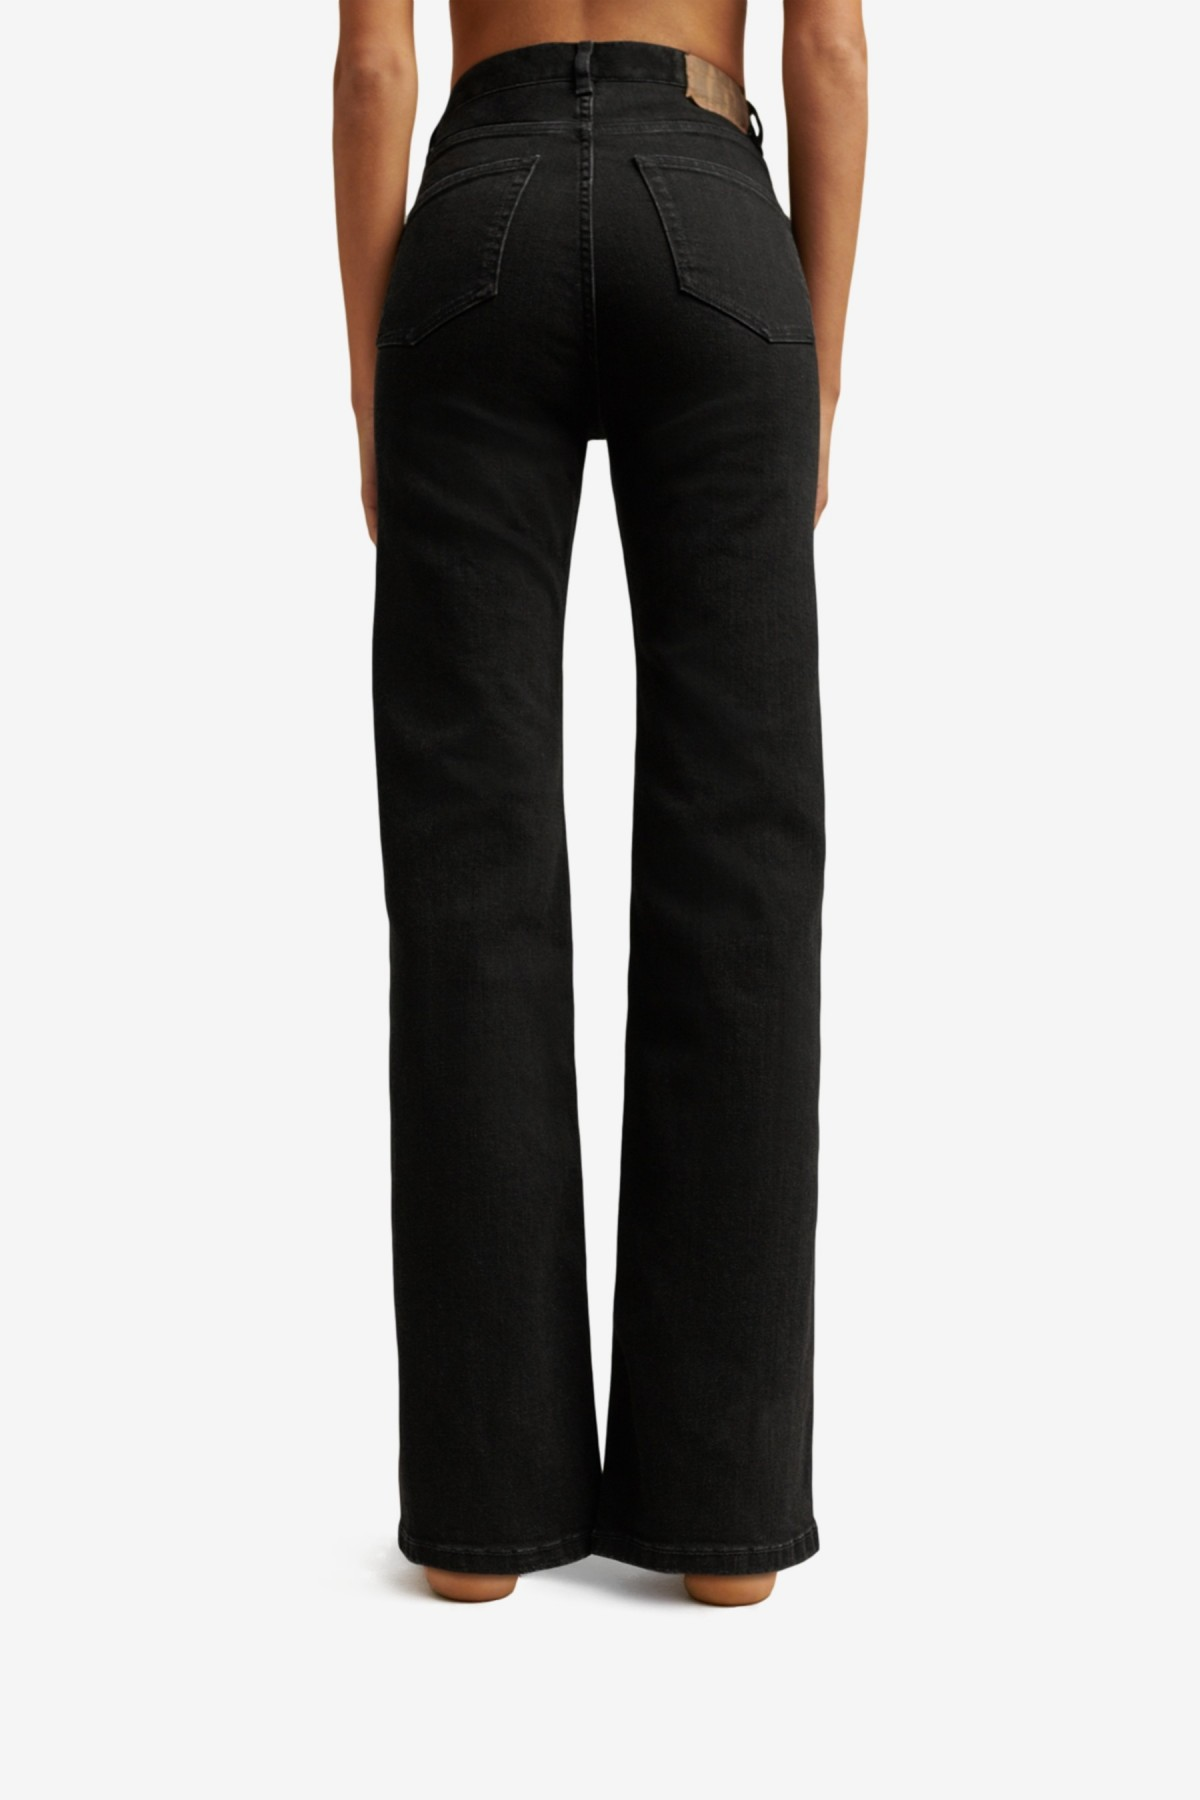 Jeanerica PW008 Pyramid Fit in Black 2 Weeks